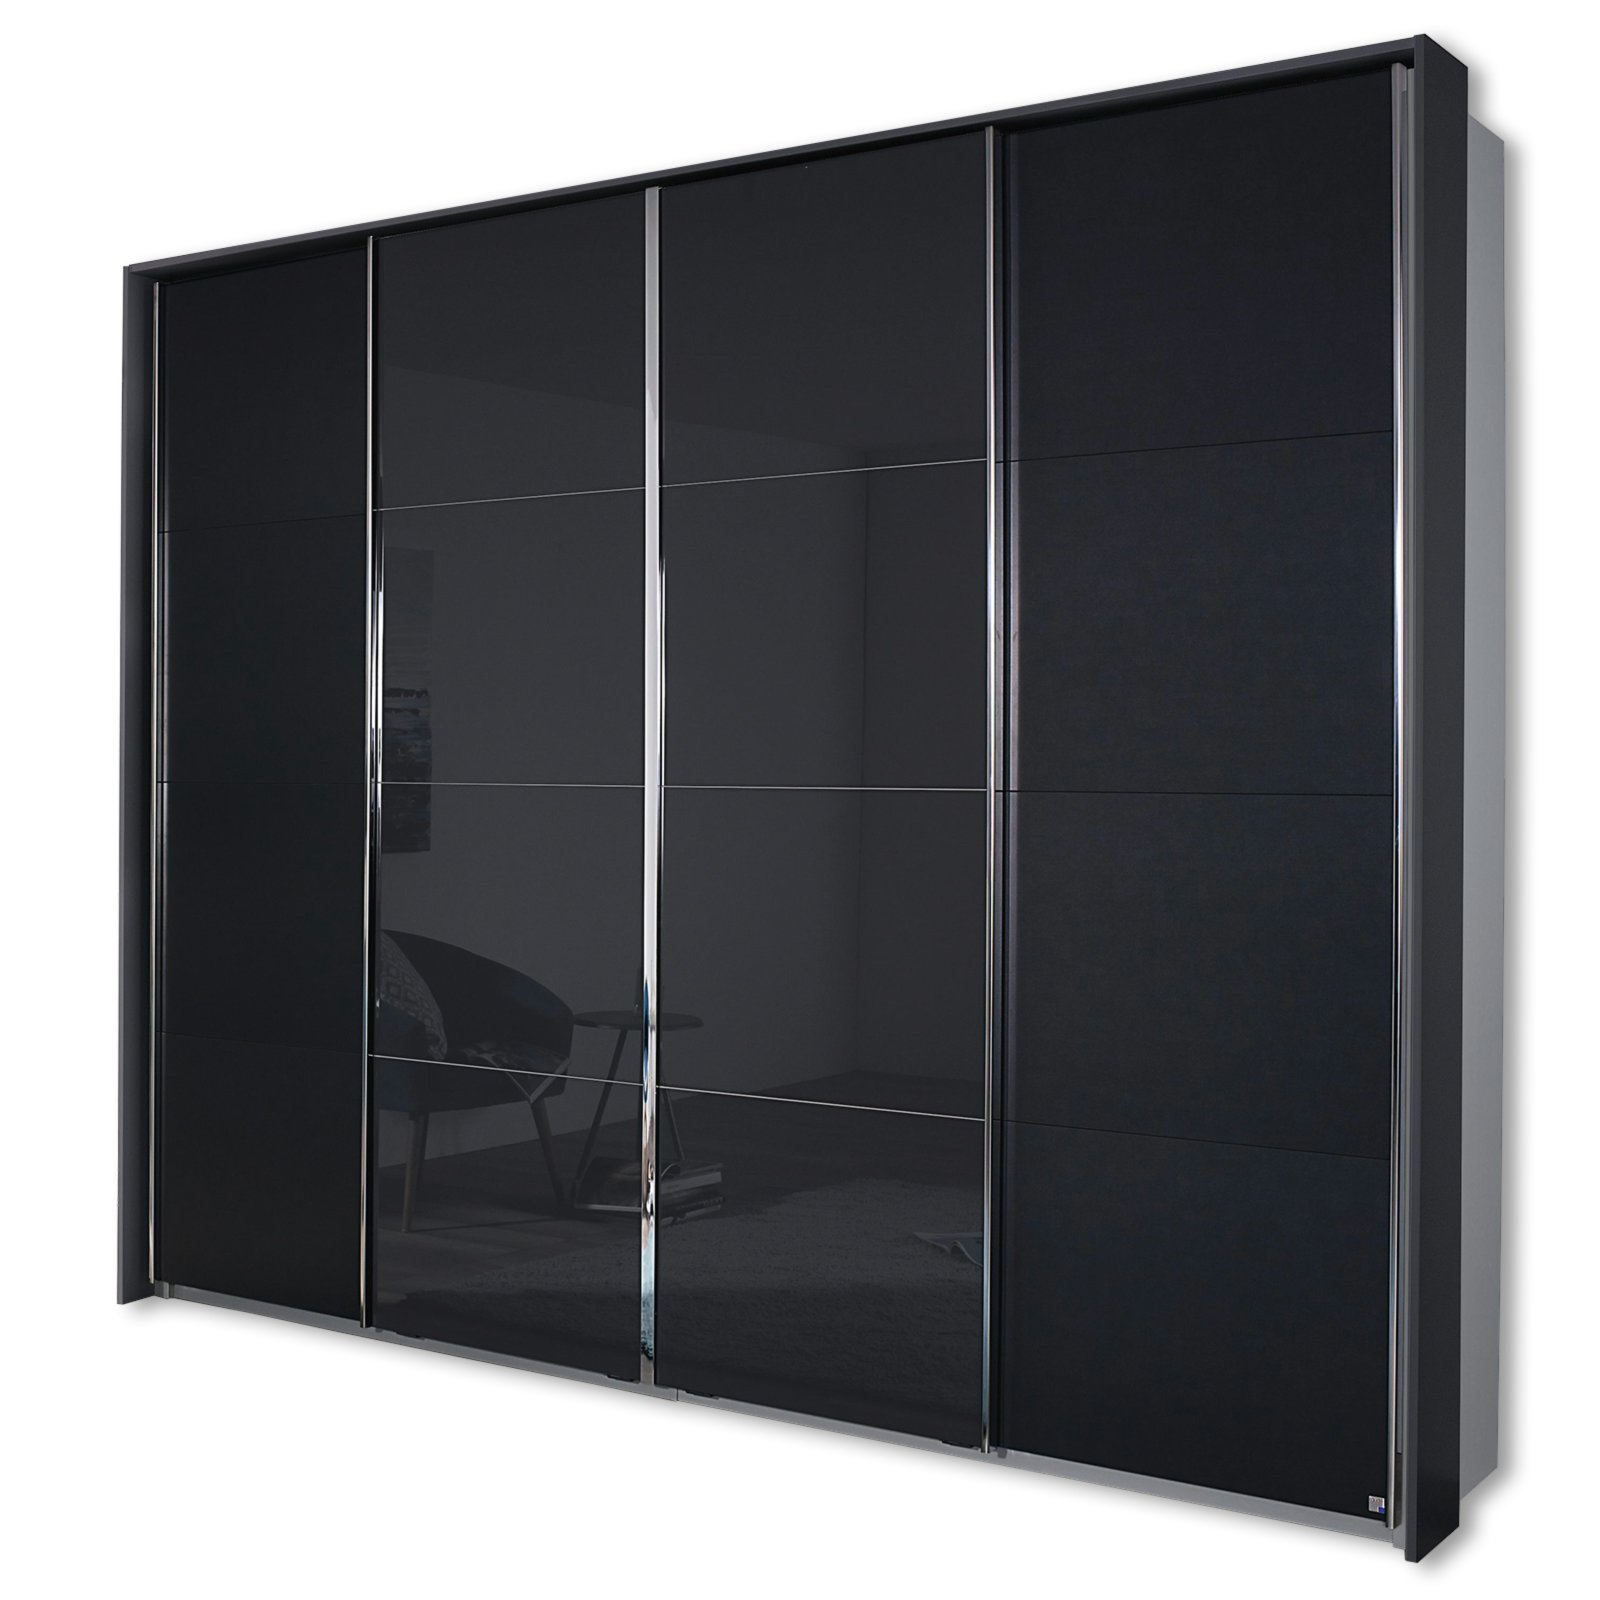 schwebet renschrank innenausstattung. Black Bedroom Furniture Sets. Home Design Ideas